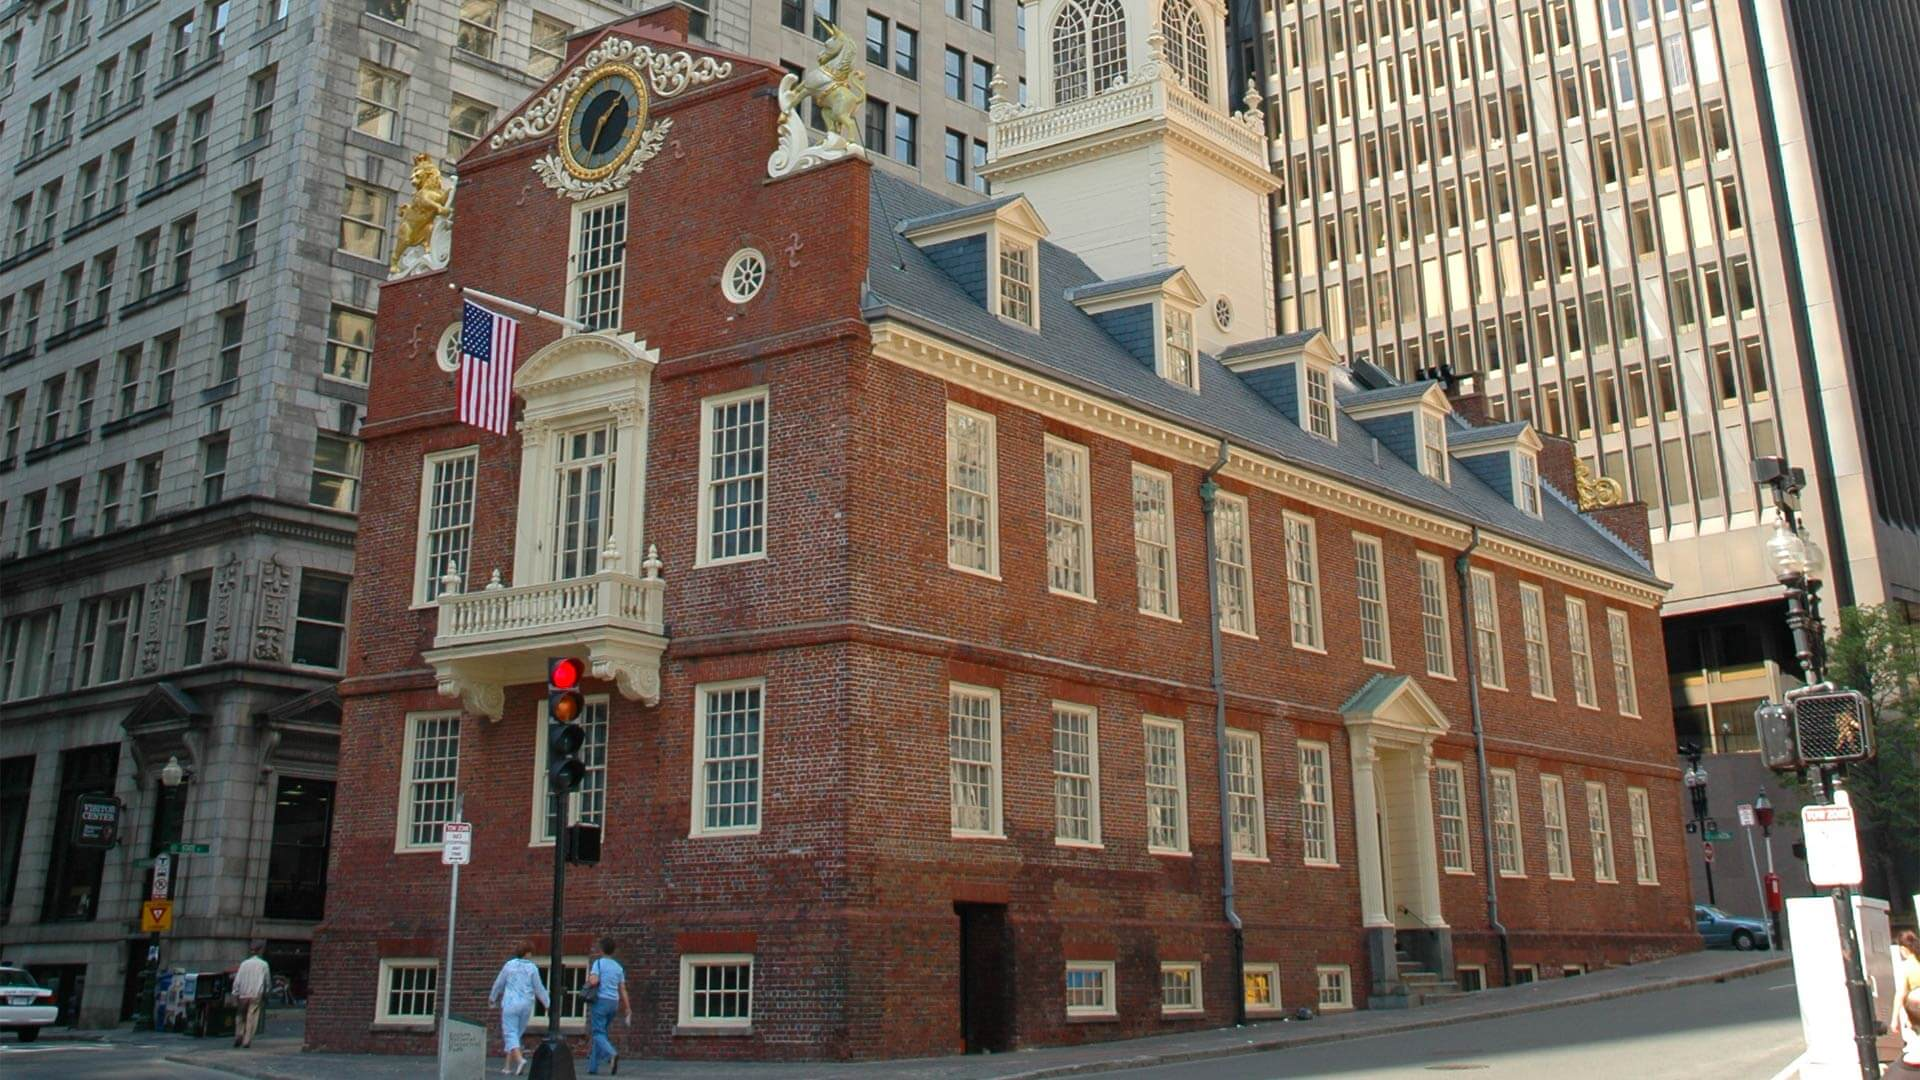 The old state house in Boston